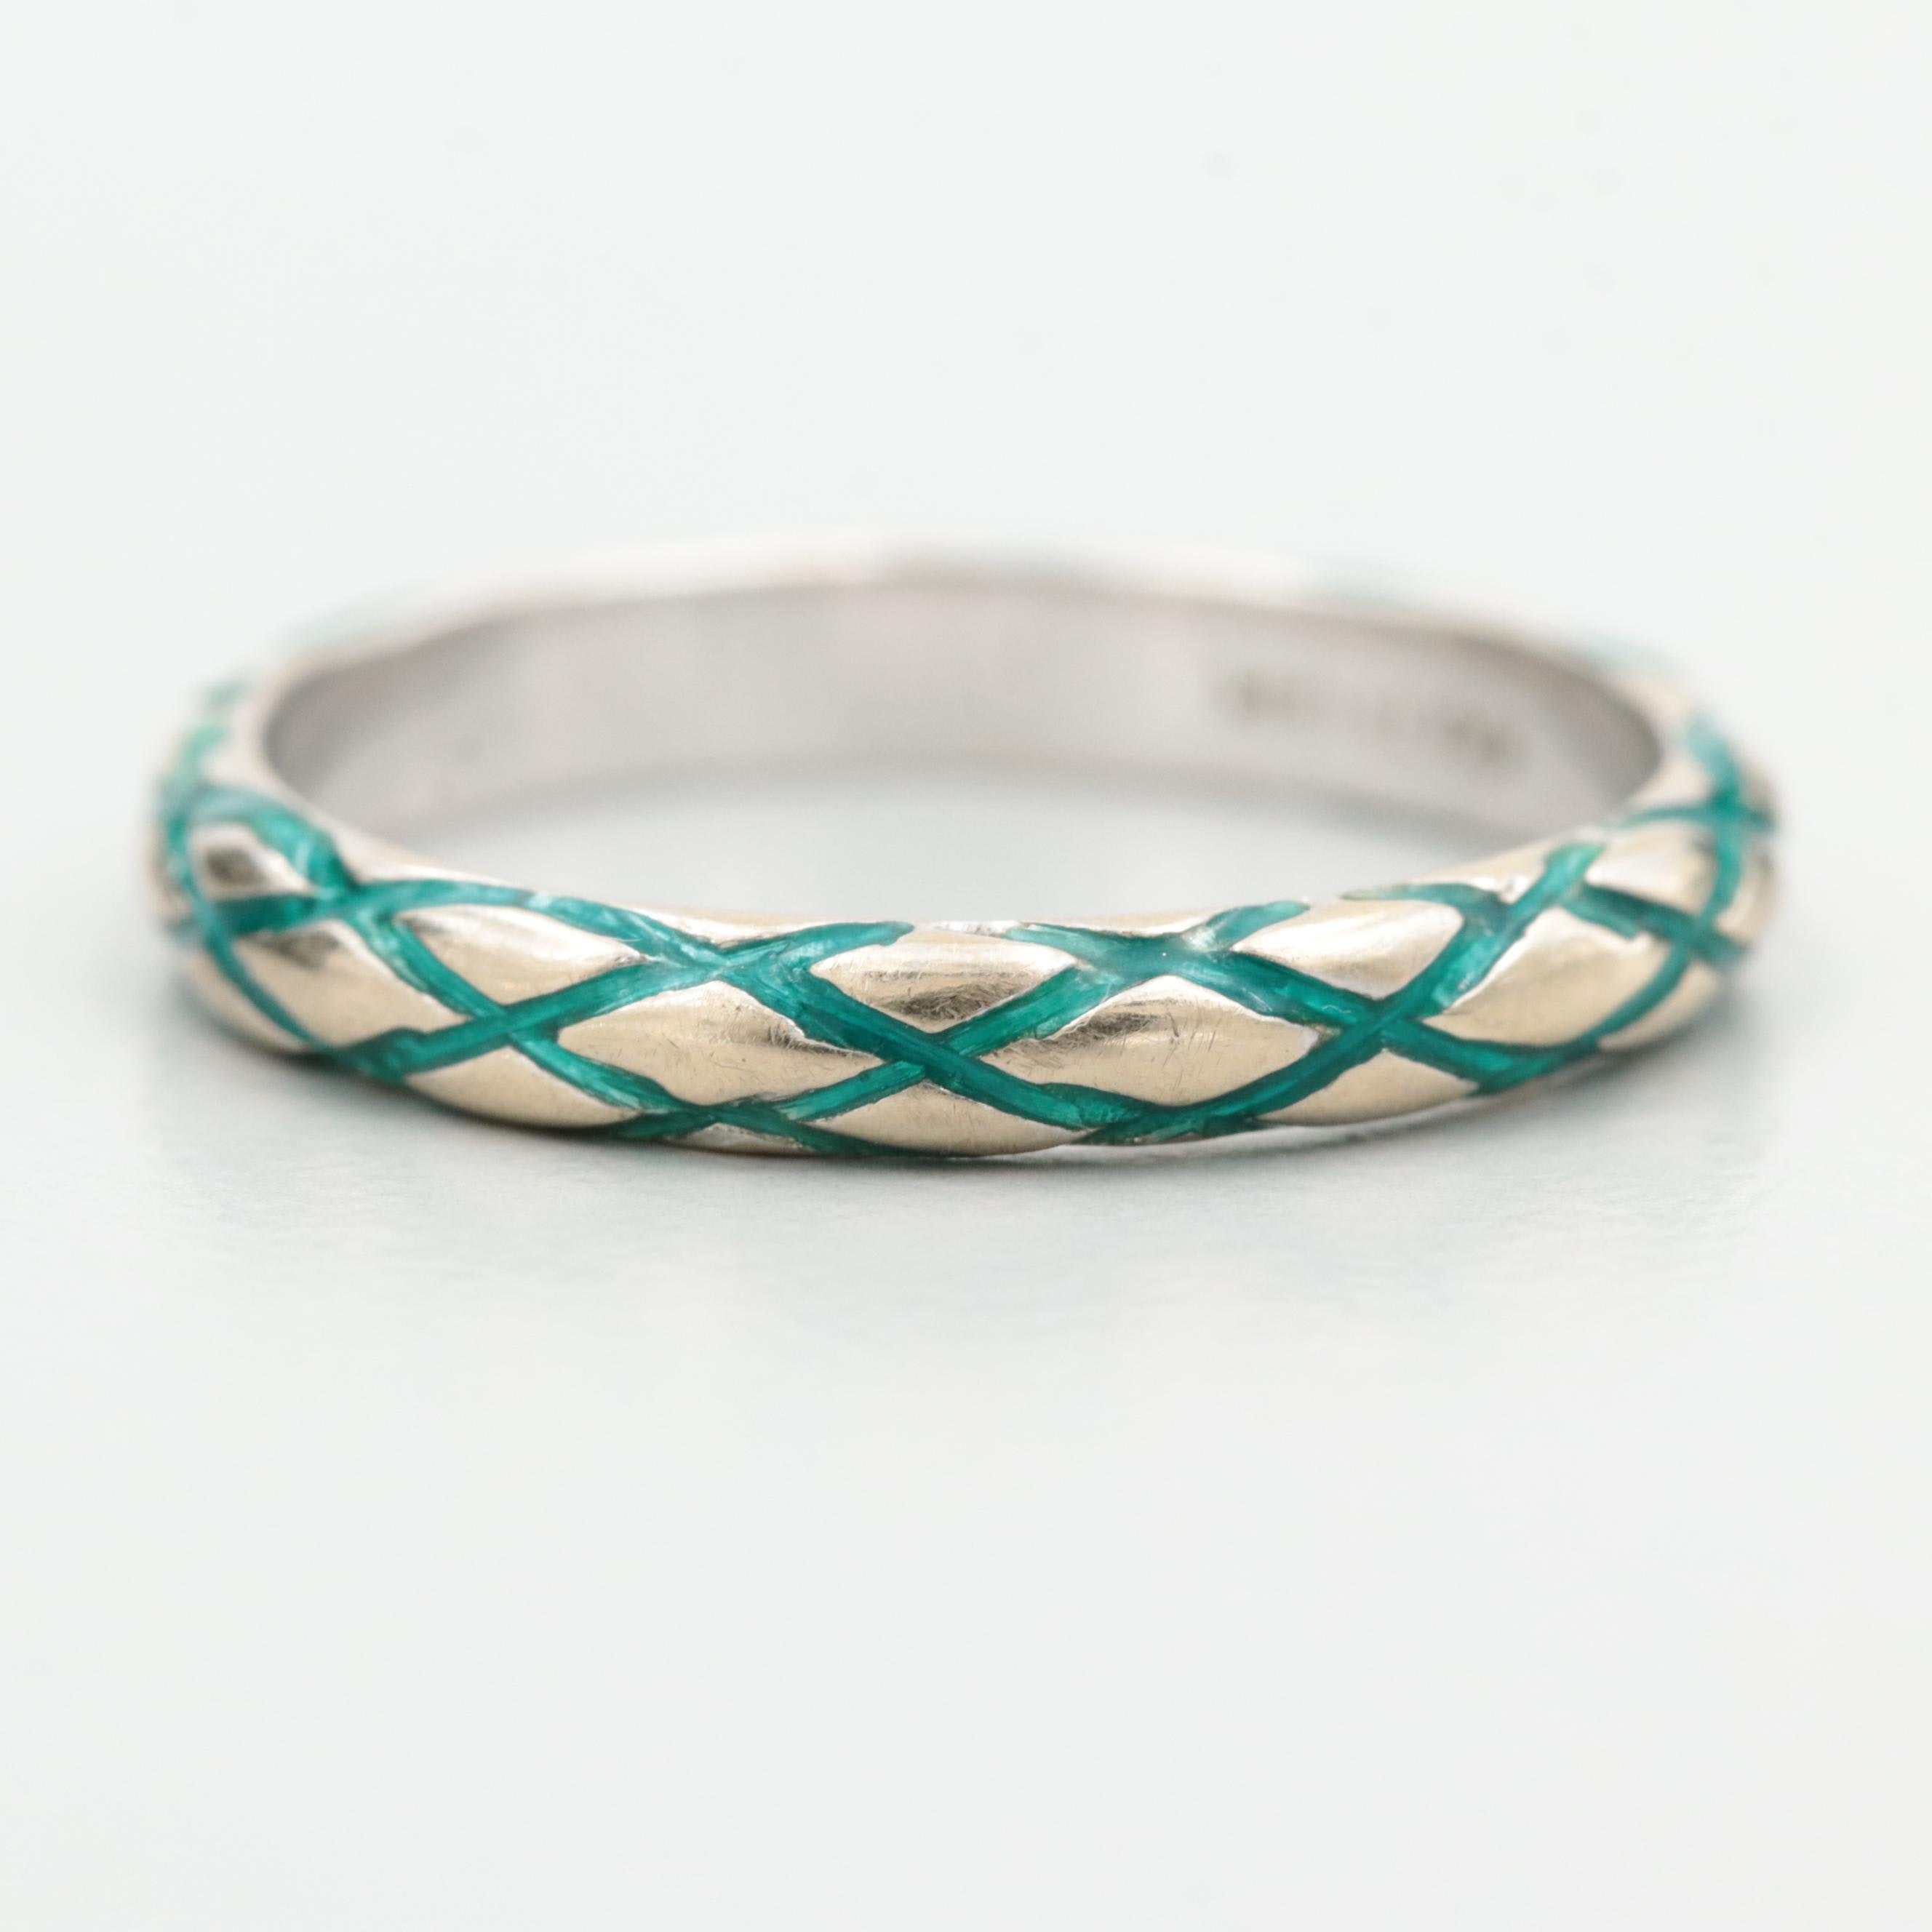 Hidalgo 18K White Gold Band with Enamel Accents